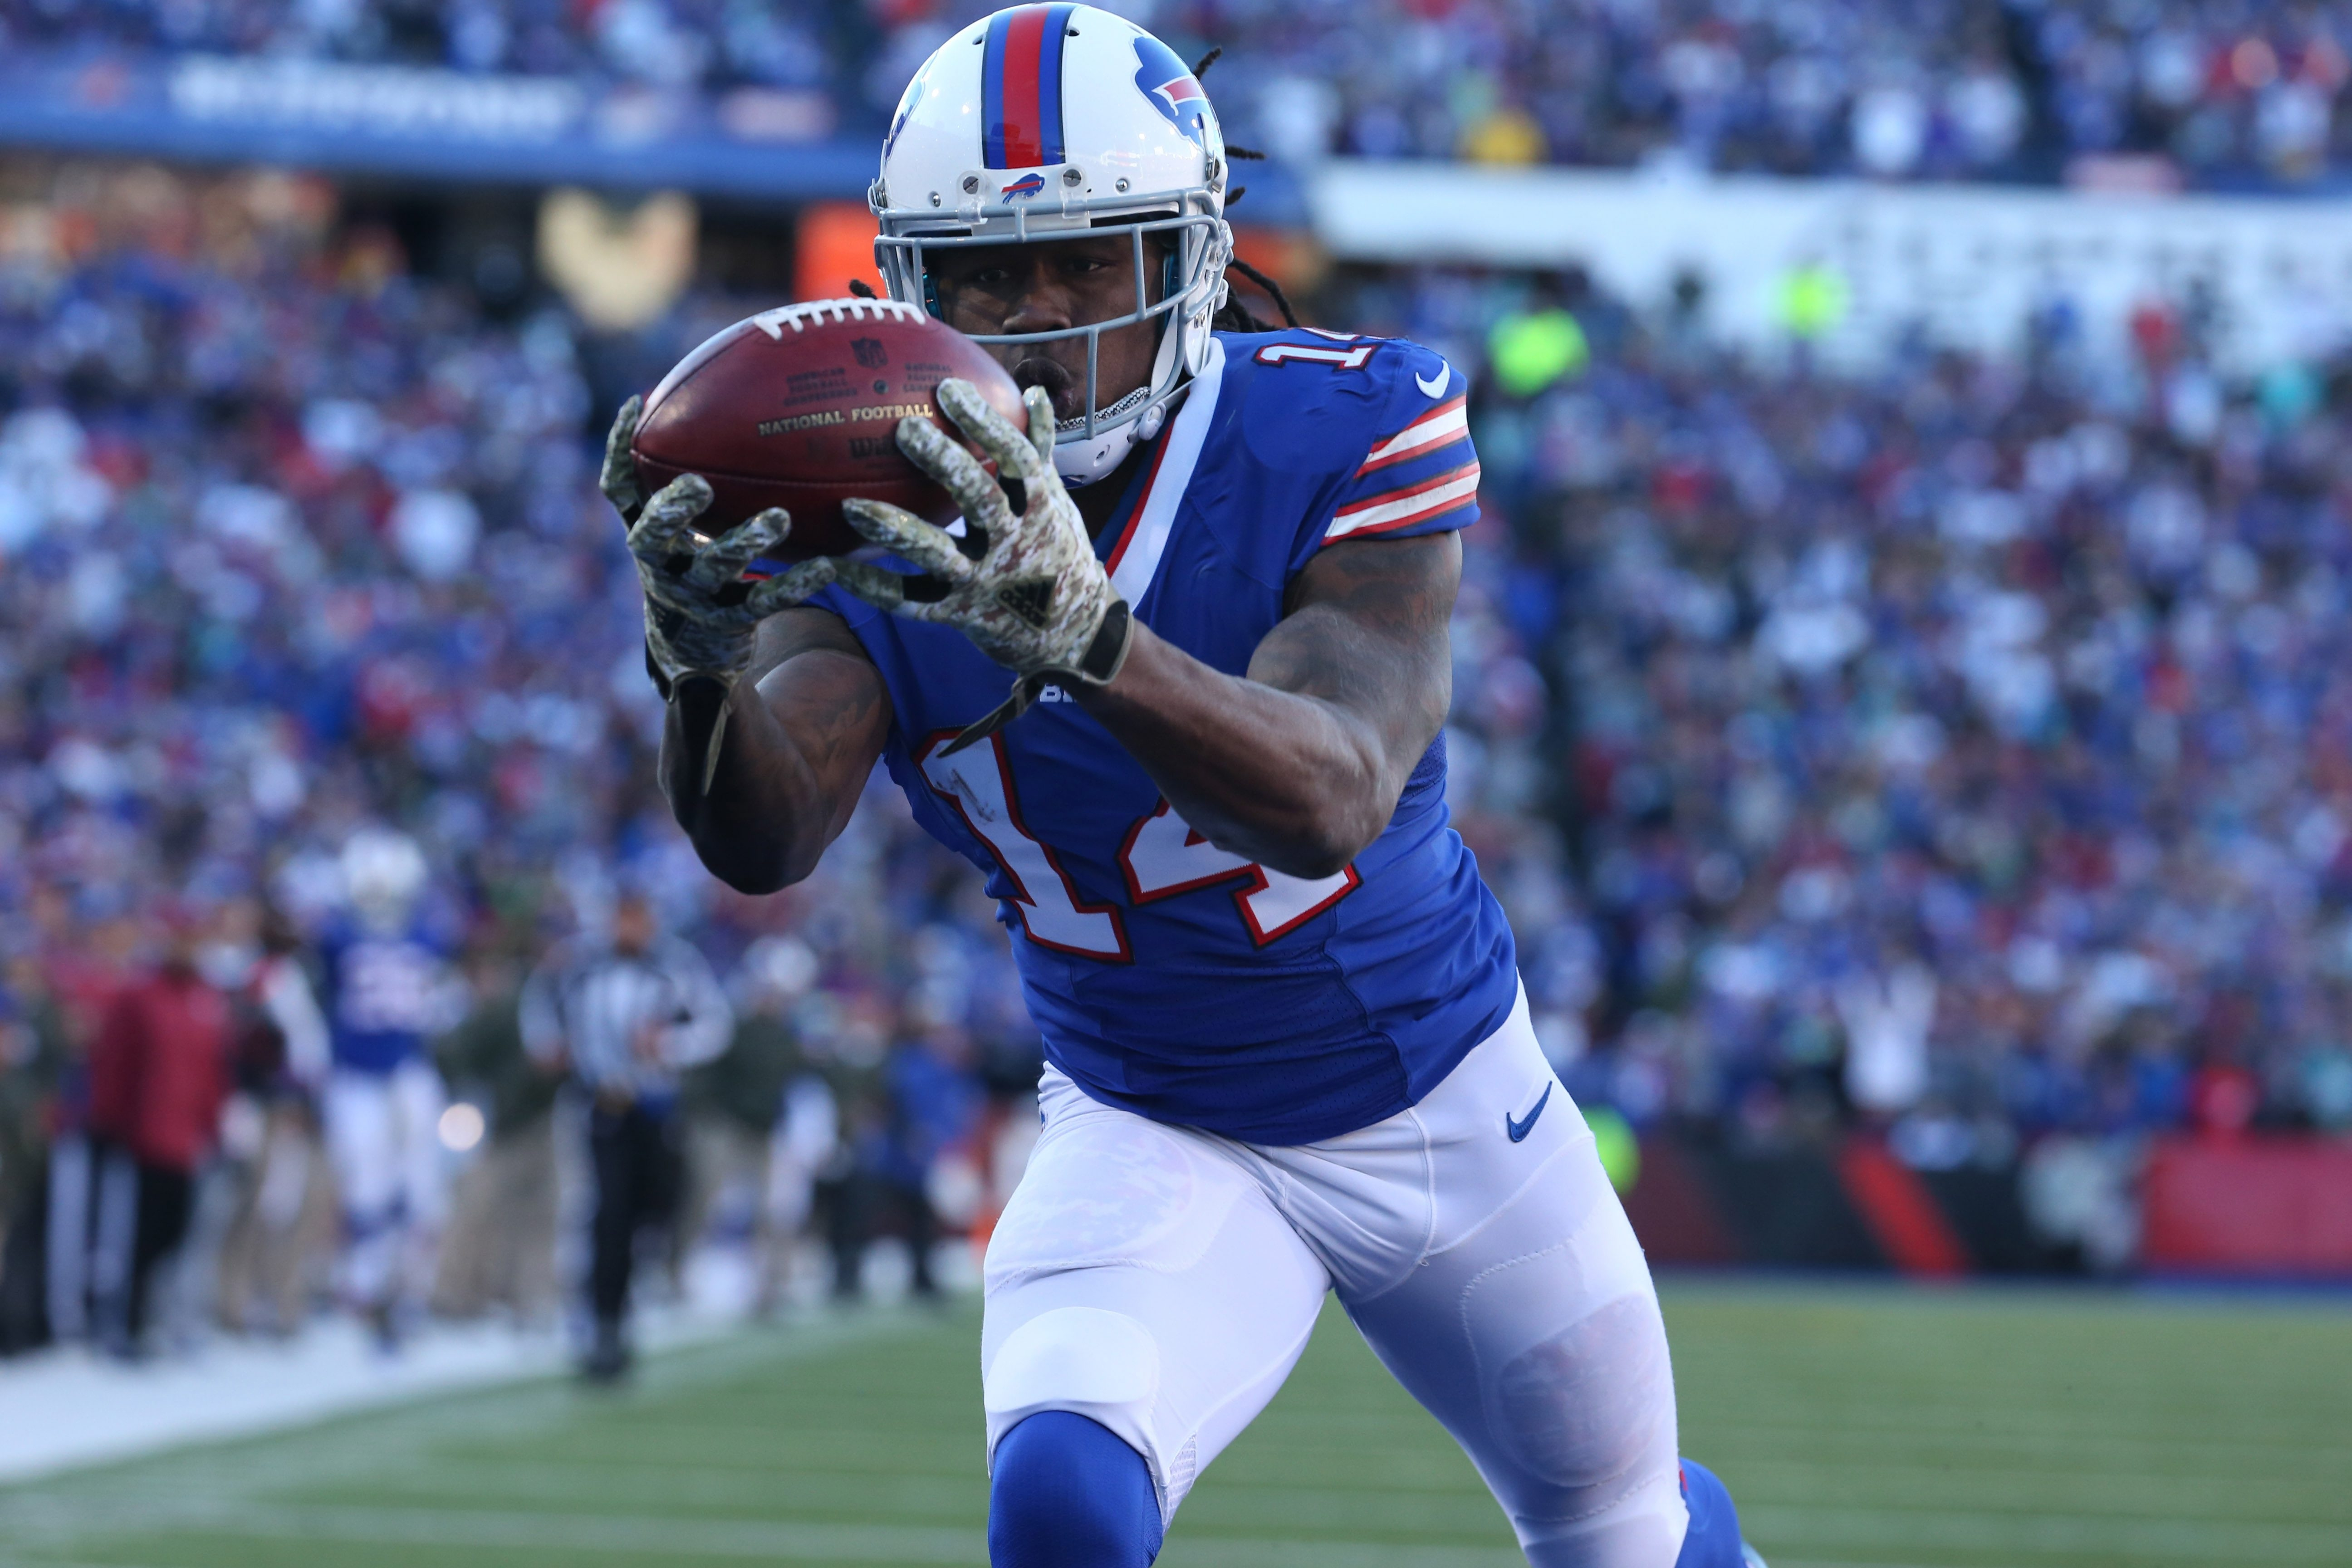 Bills wide receiver Sammy Watkins pulls in a 44-yard touchdown pass from quarterback Tyrod Taylor in the third quarter on Sunday. Watkins finished with eight  catches for a career-high 168 yards.